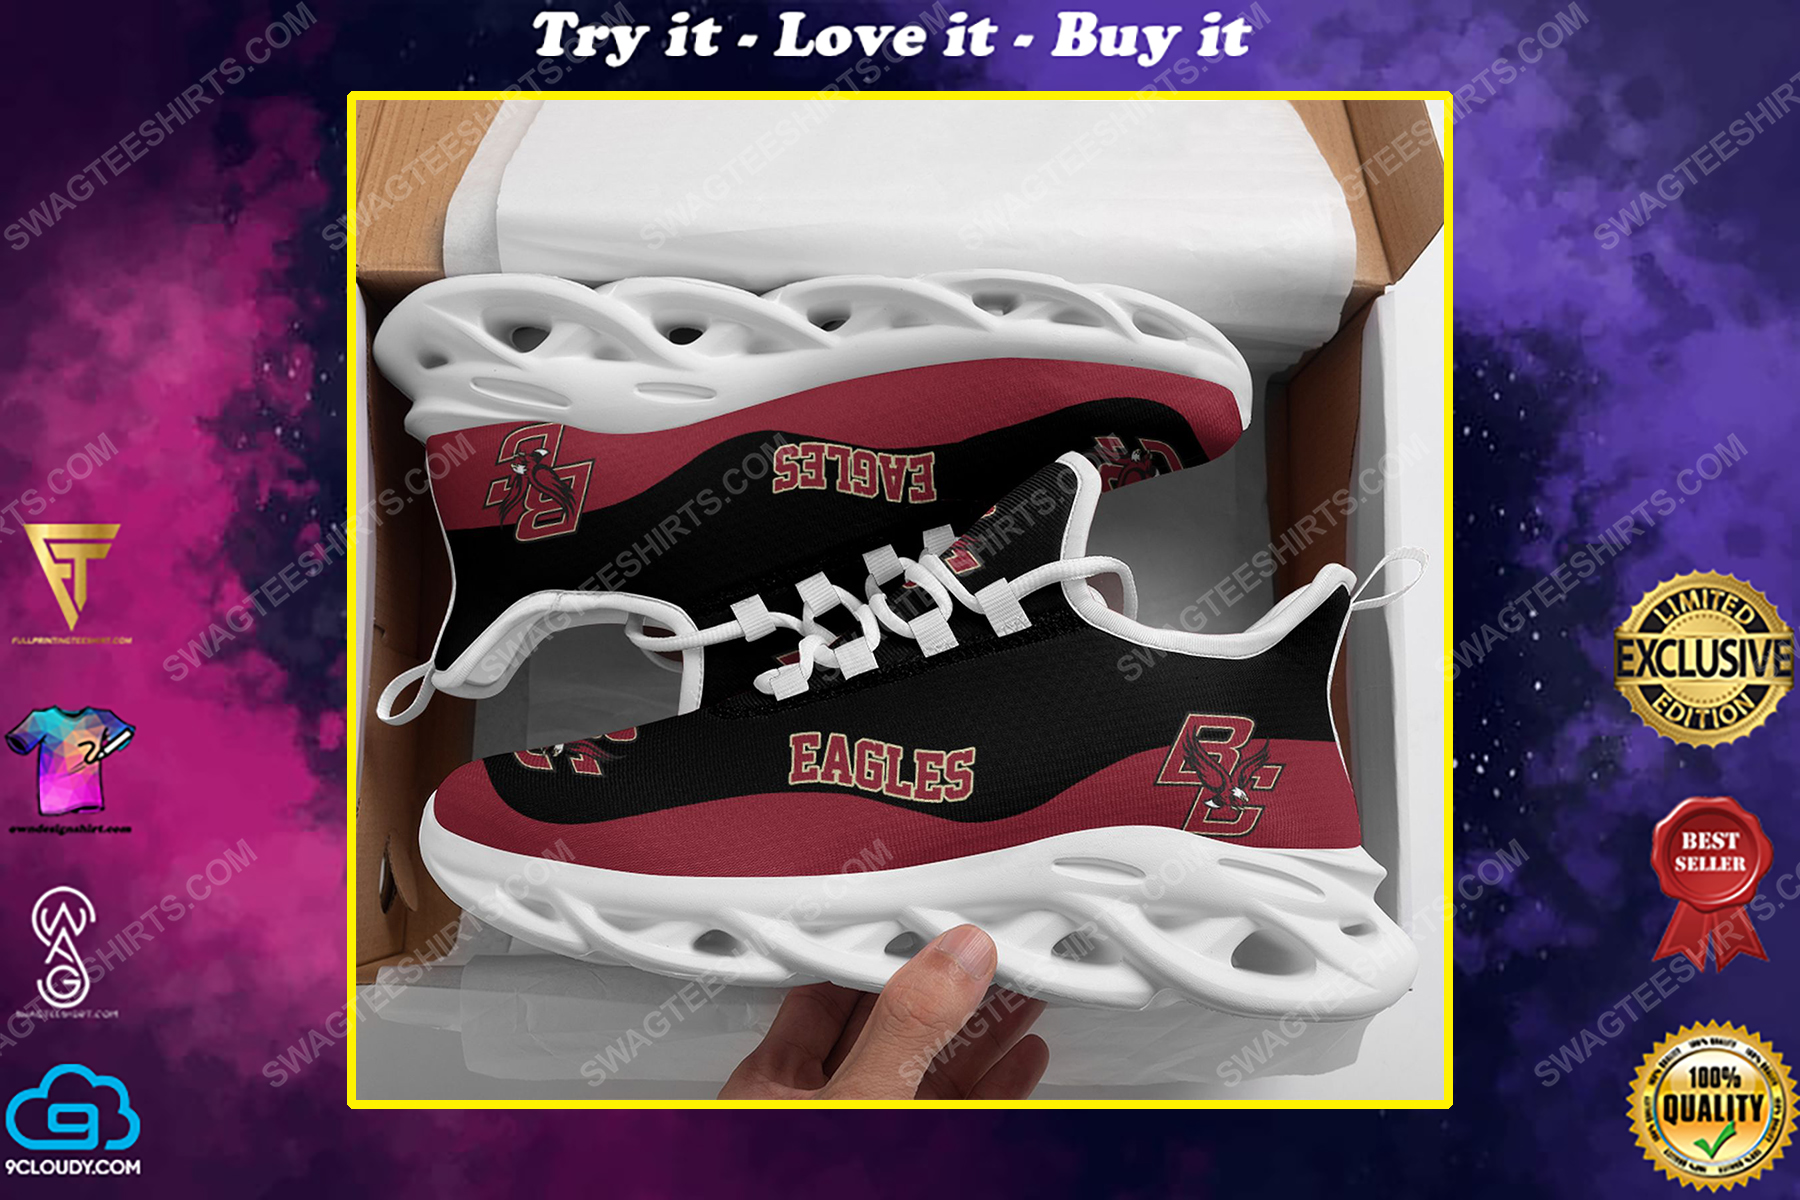 The boston college eagles football team max soul shoes